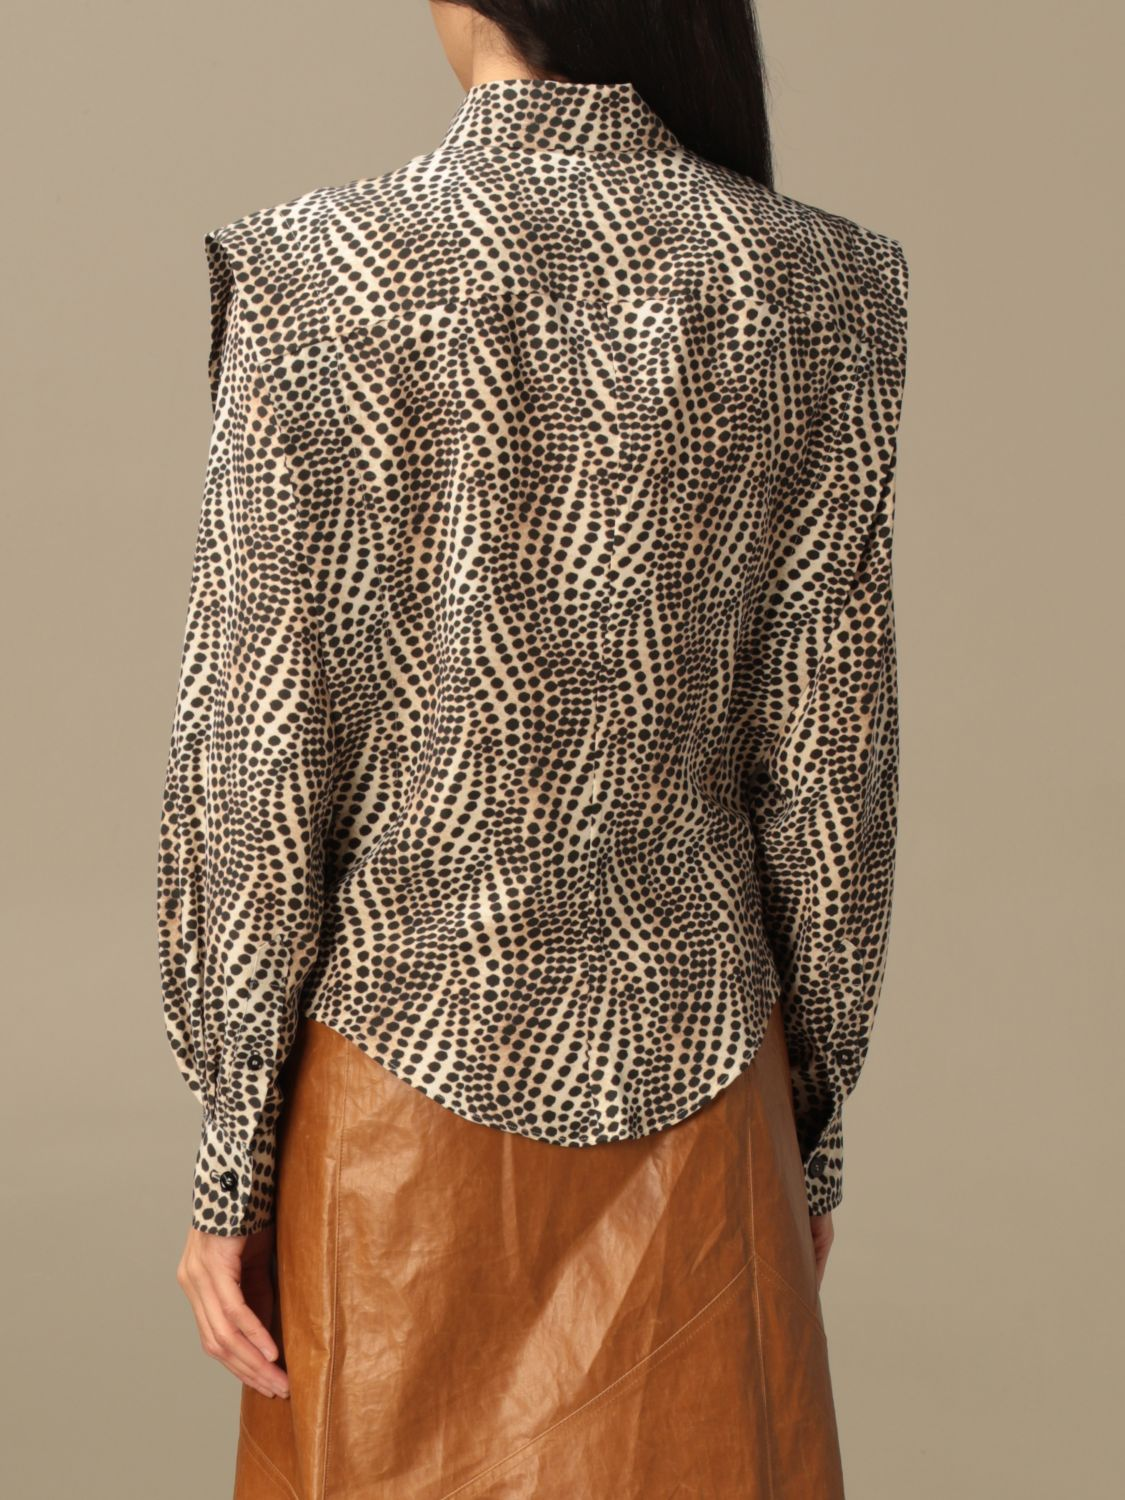 Shirt Isabel Marant: Isabel Marant patterned shirt beige 3